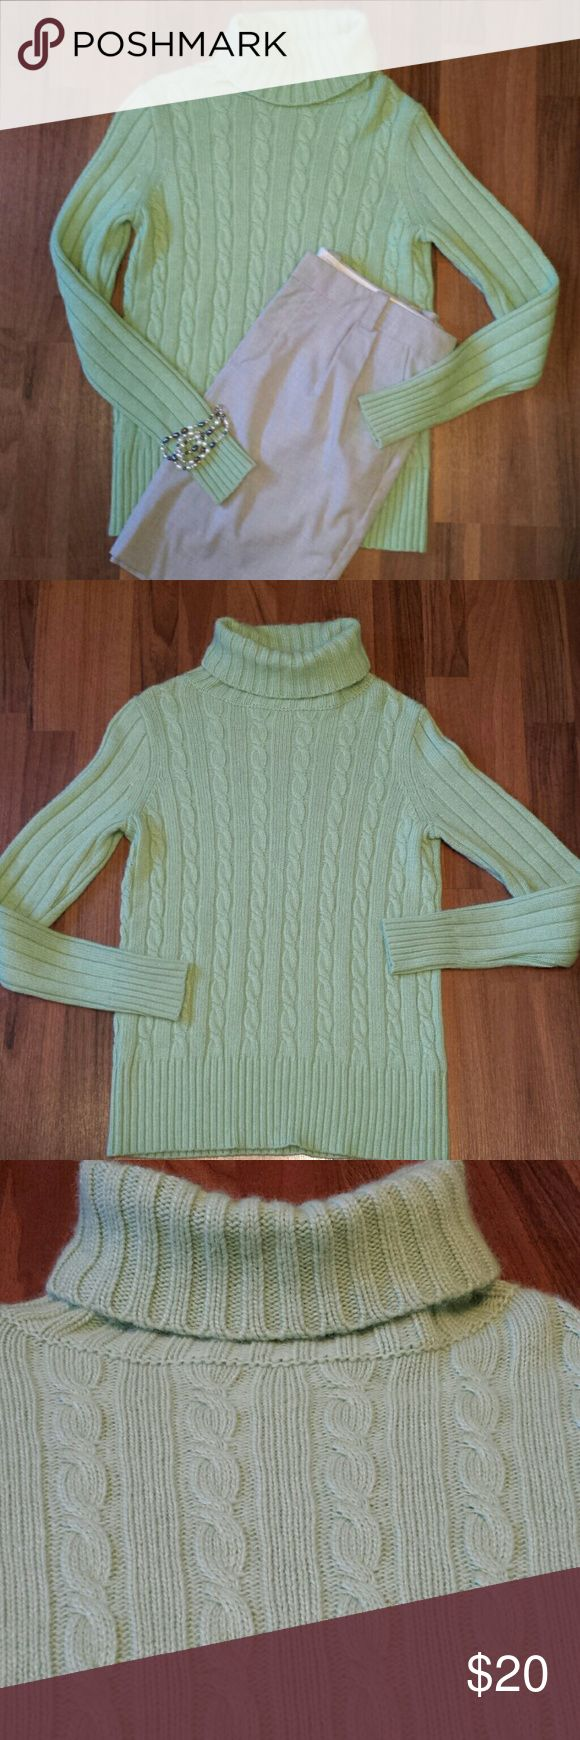 {J. Crew} Sweater This sweater is super soft & a beautiful color for Spring! Stay warm but look fresh🌼! This pretty light green will look nice with your gray, black, tan or white pants or skirts! Excellent condition, well taken care of, it's never been put into the washer or dryer. Fits true to size. 45% Viscose, 23% Nylon, 17% Wool & 15% Angora Rabbit Hair.  Measurements: Length 24, Bust 17 & Arm Length 24. Offers Welcome! J. Crew Sweaters Cowl & Turtlenecks